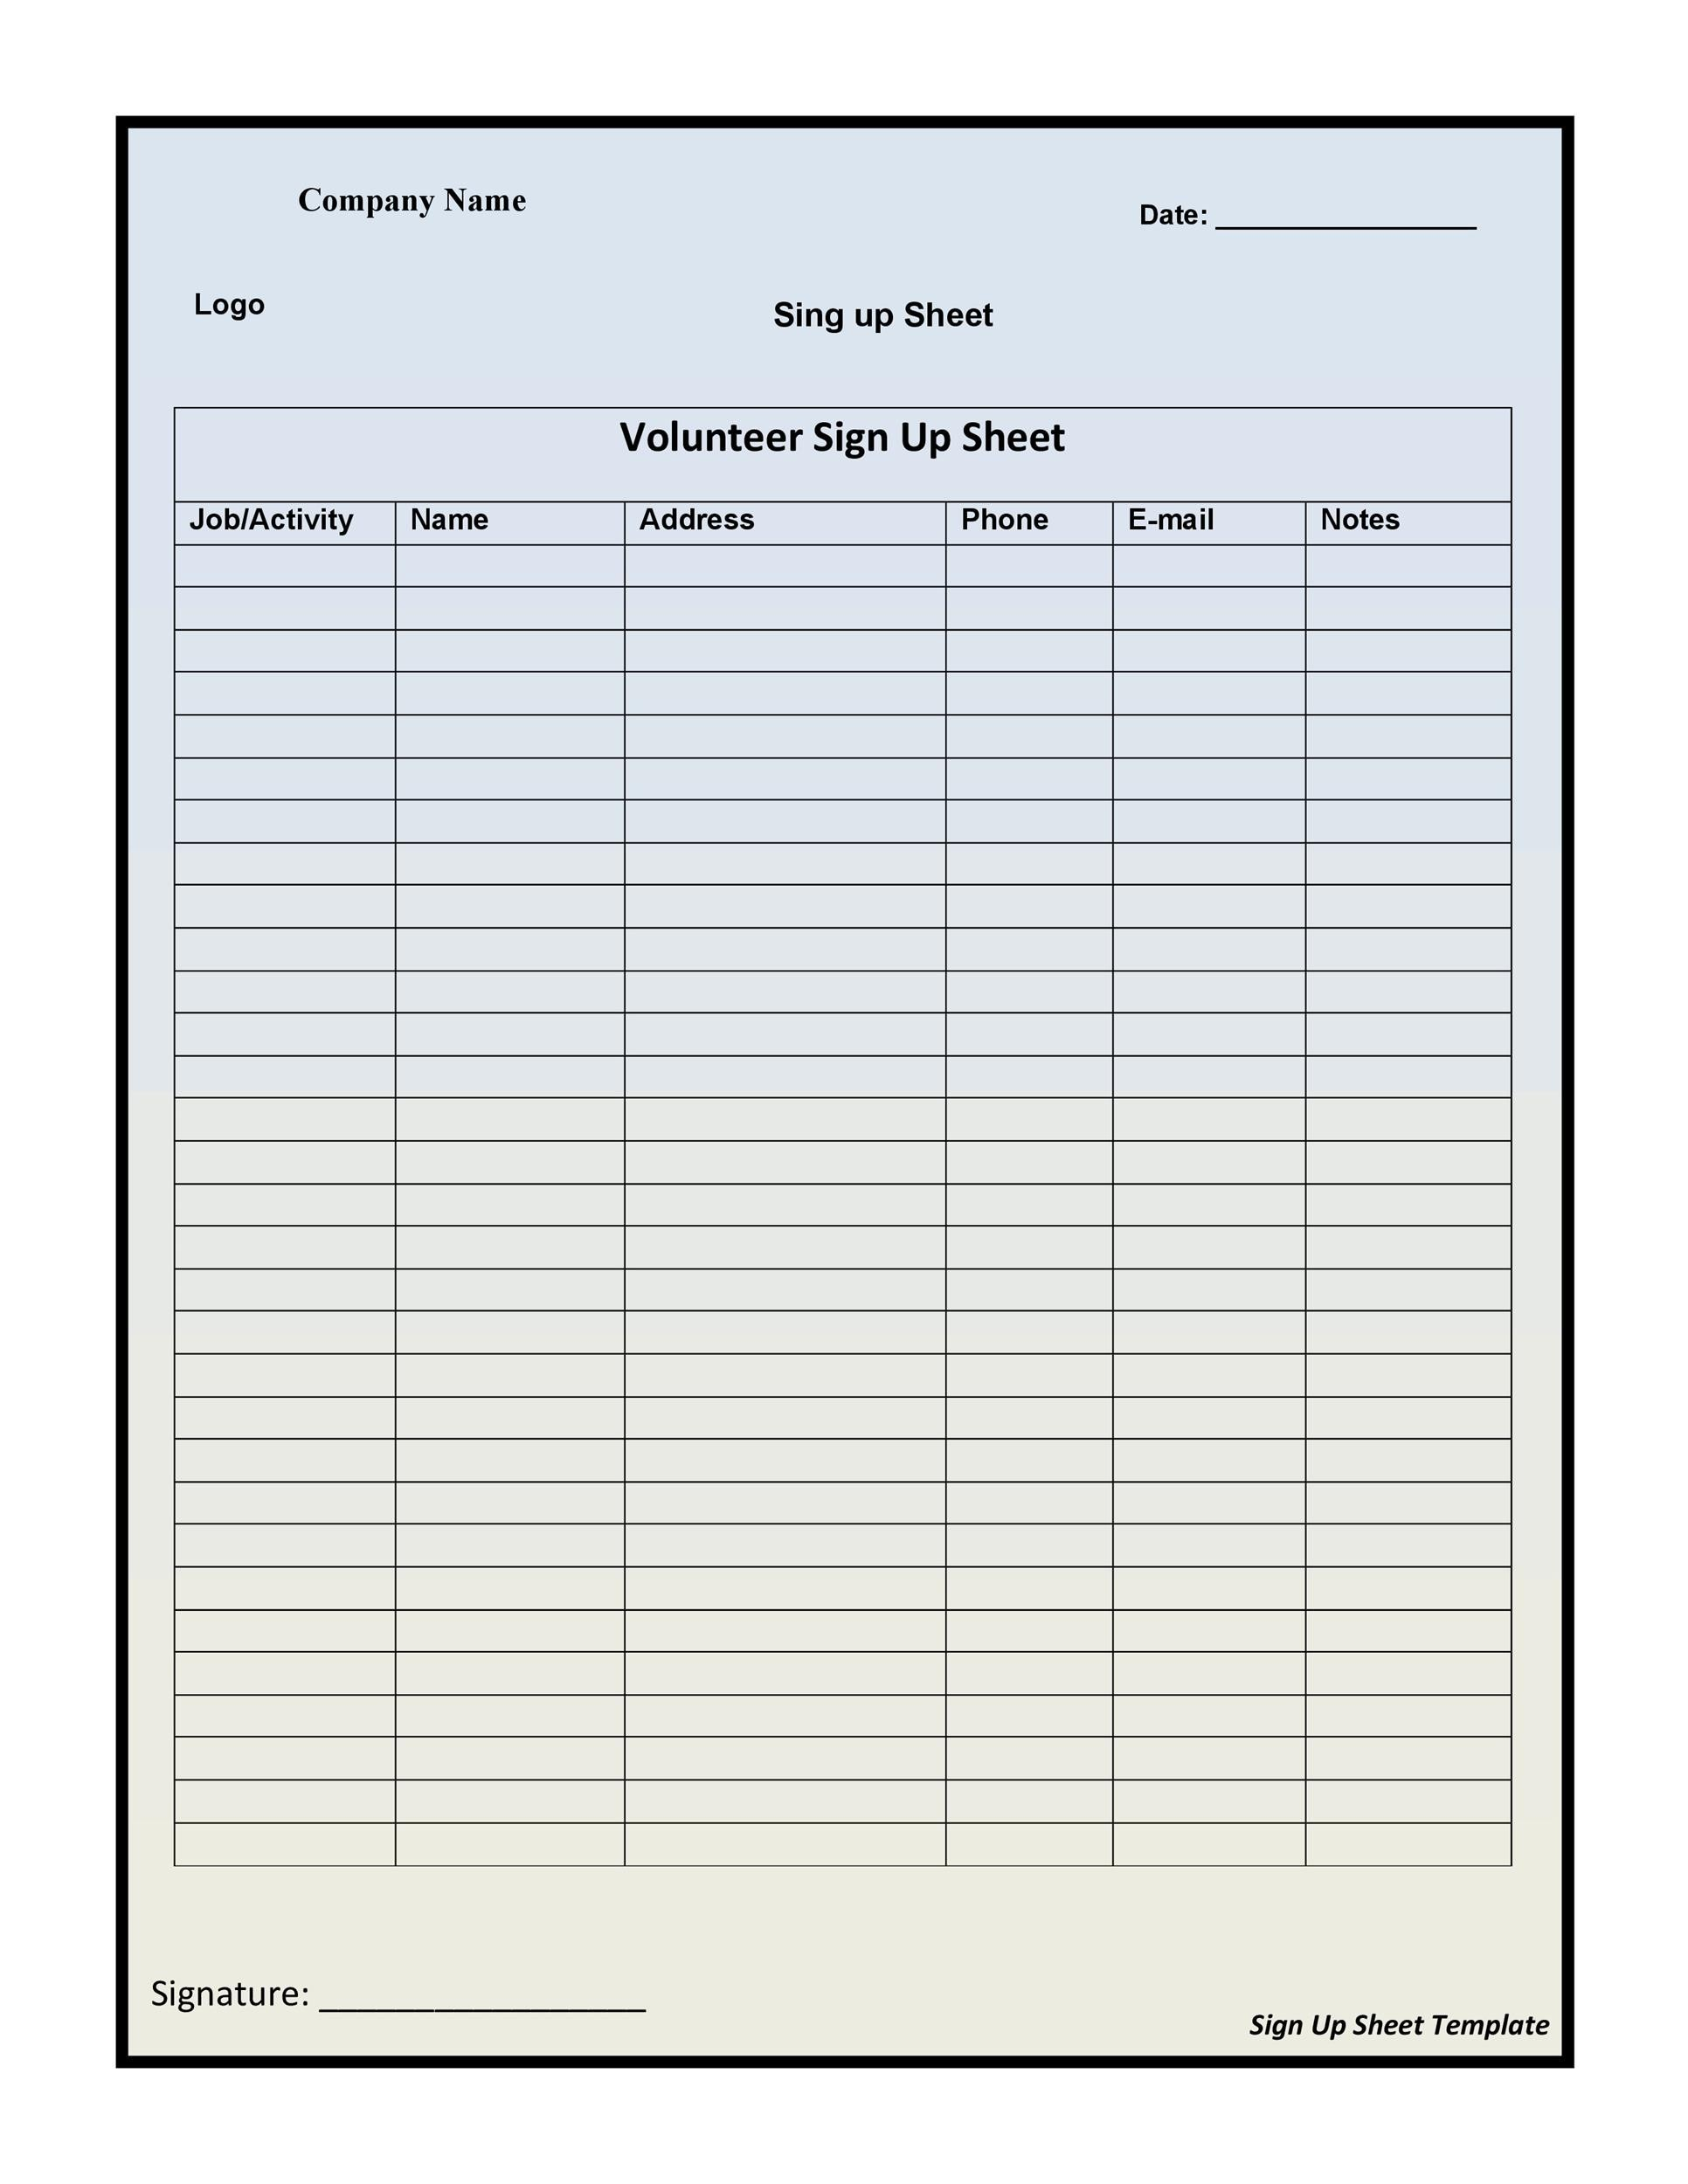 40 Sign Up Sheet Sign In Sheet Templates Word Amp Excel